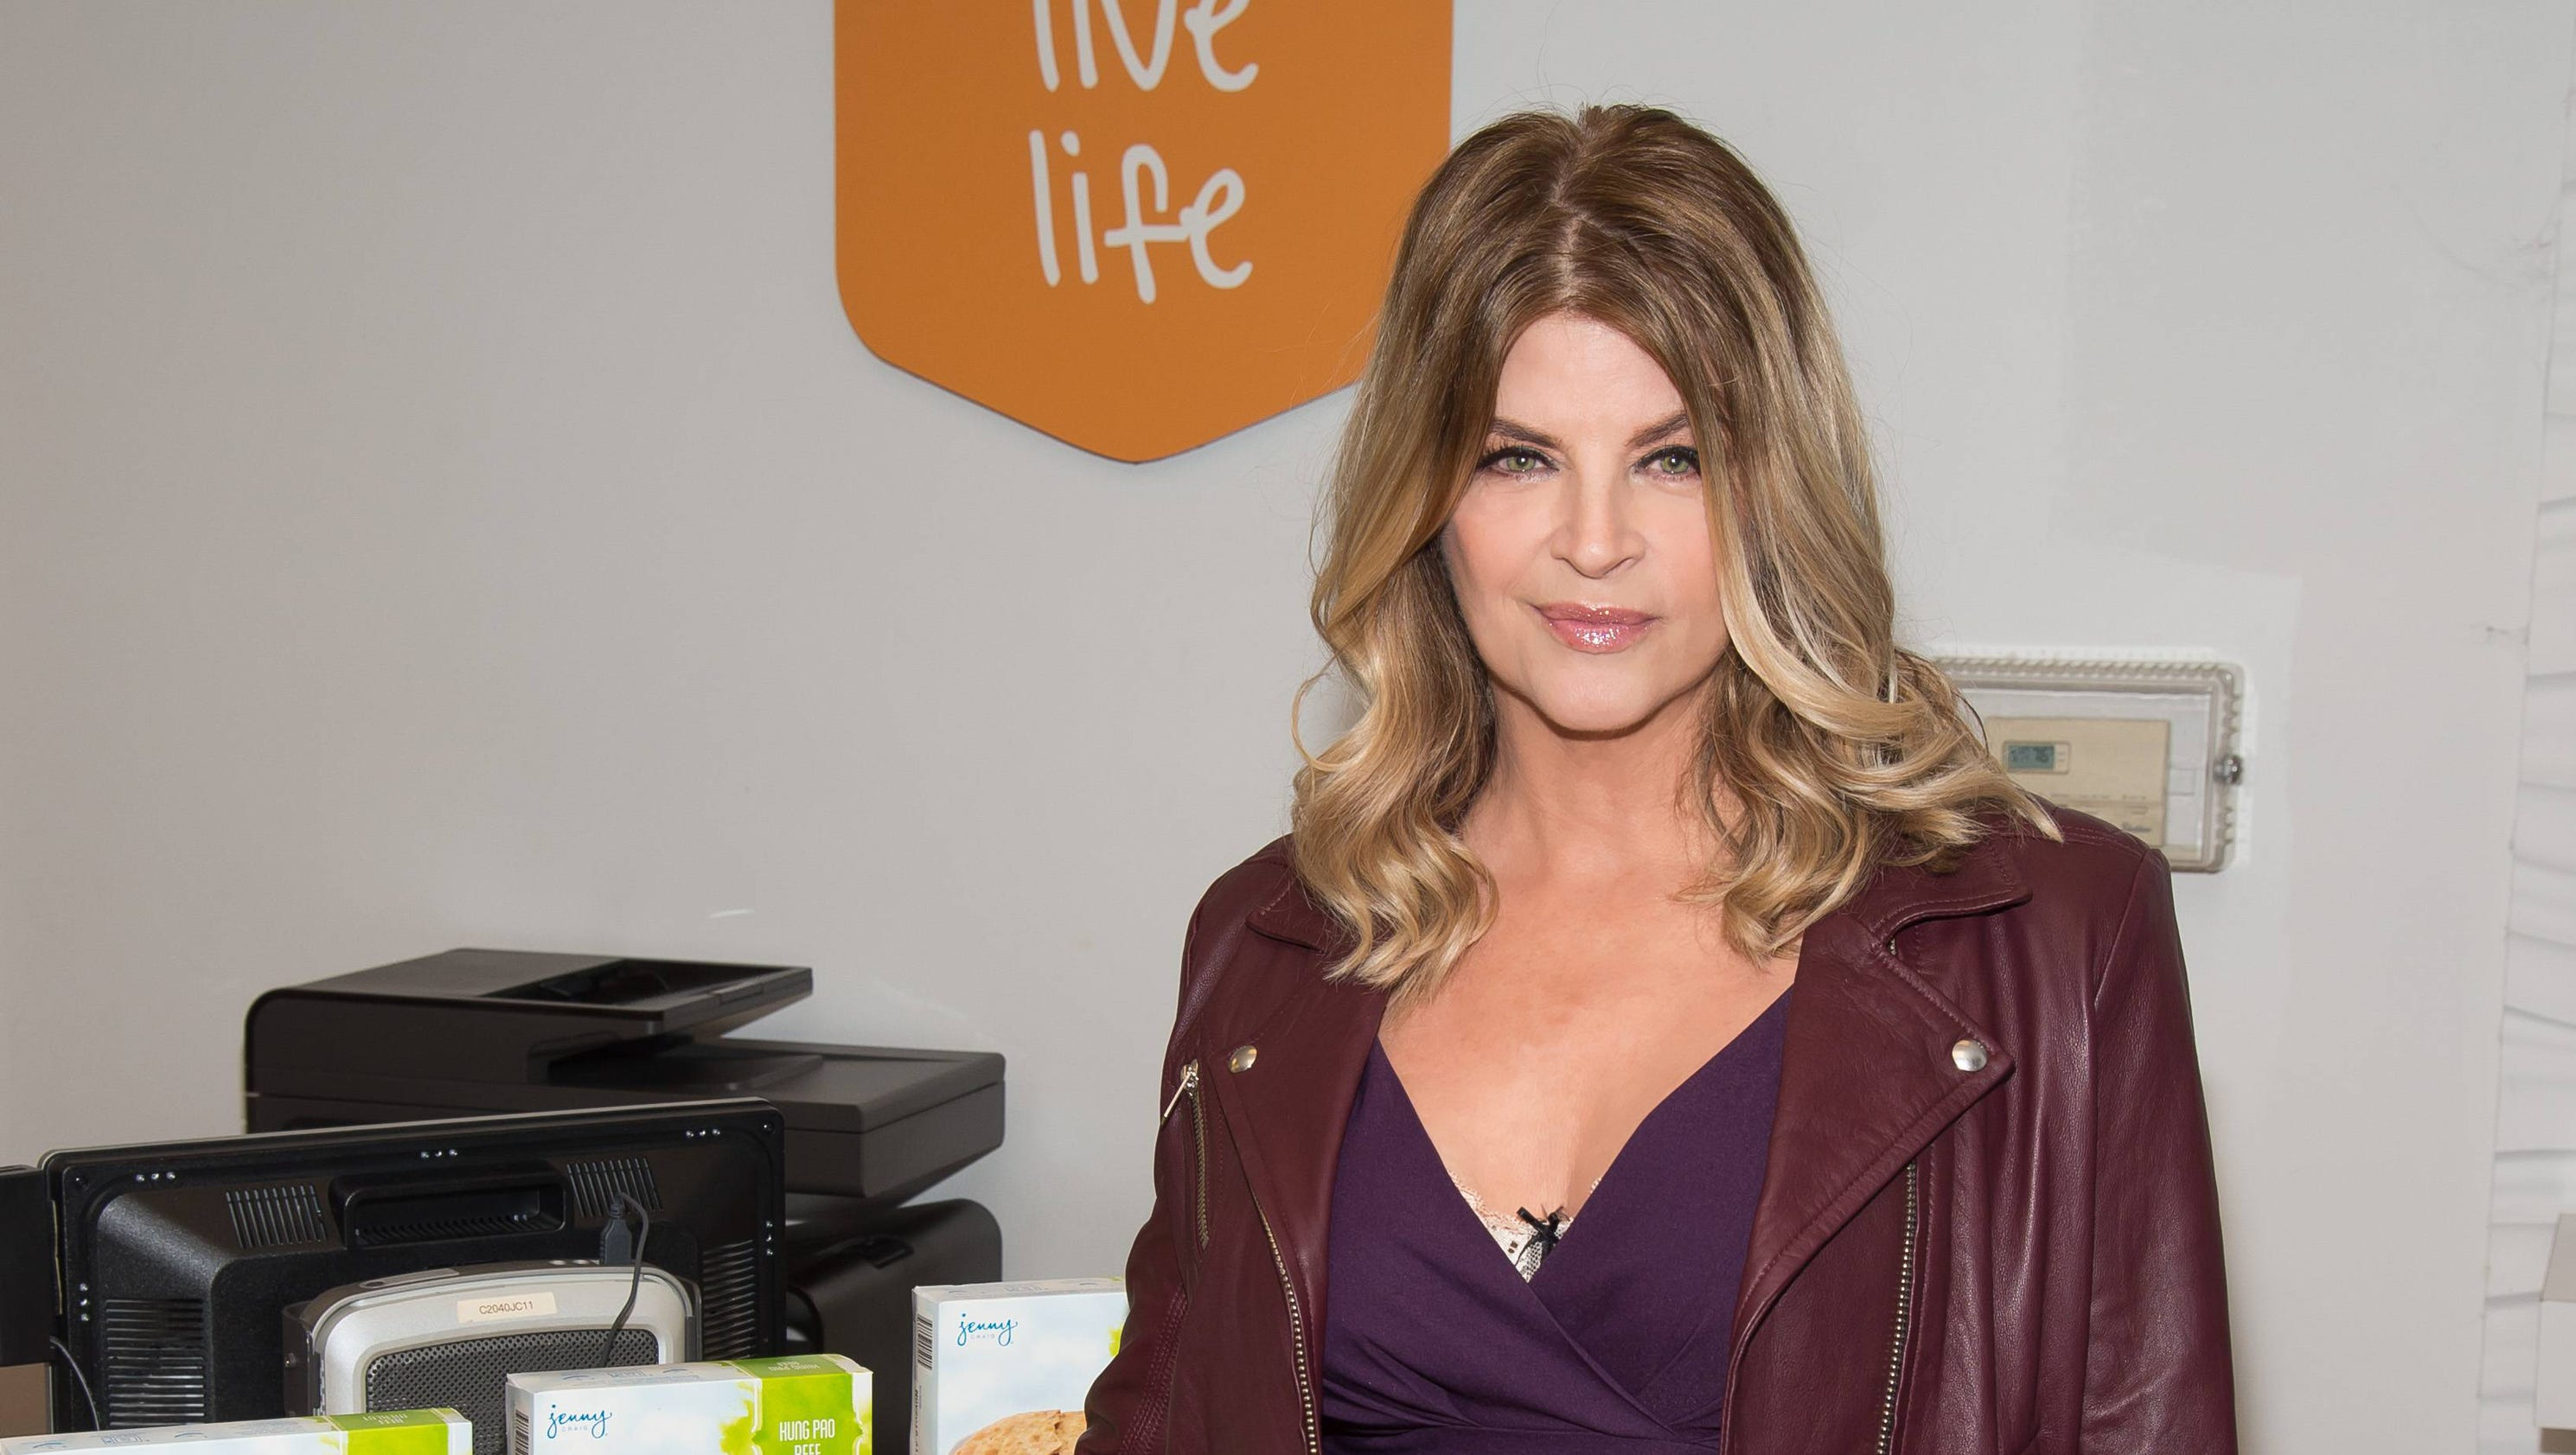 Kirstie Alley endorses Donald Trump for president - 50 Hairstyles